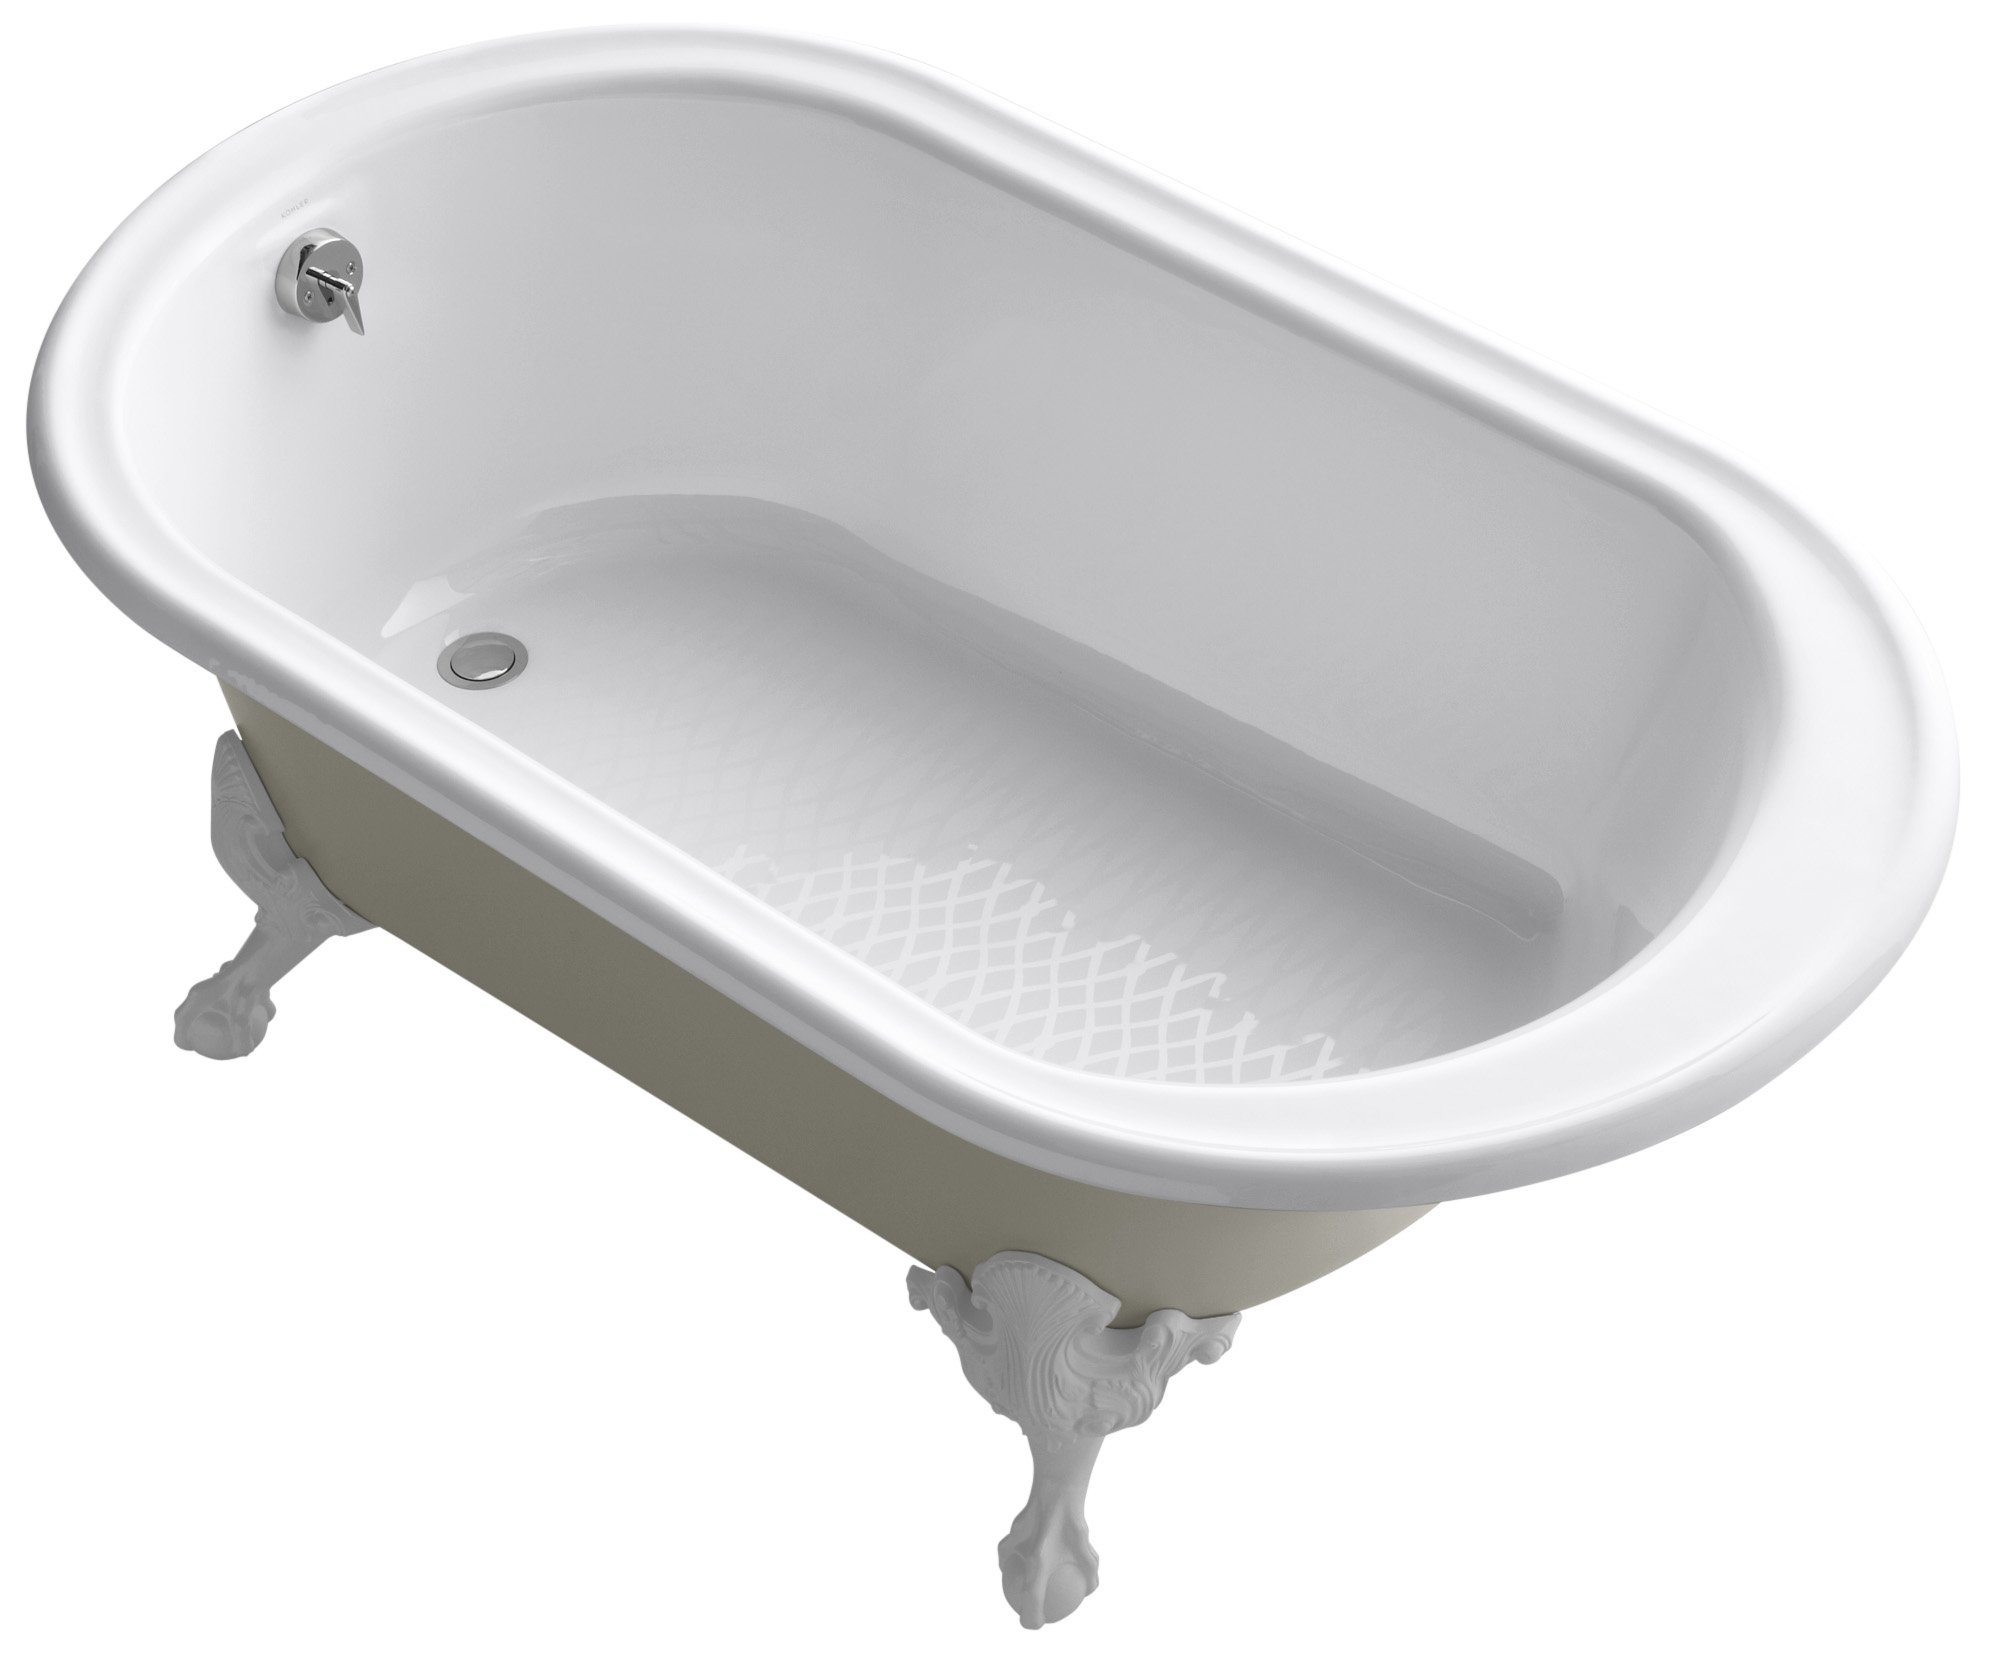 Kohler K-710-S-0 Iron Works Historic Bath with Sandbar Exterior, White by Kohler (Image #1)